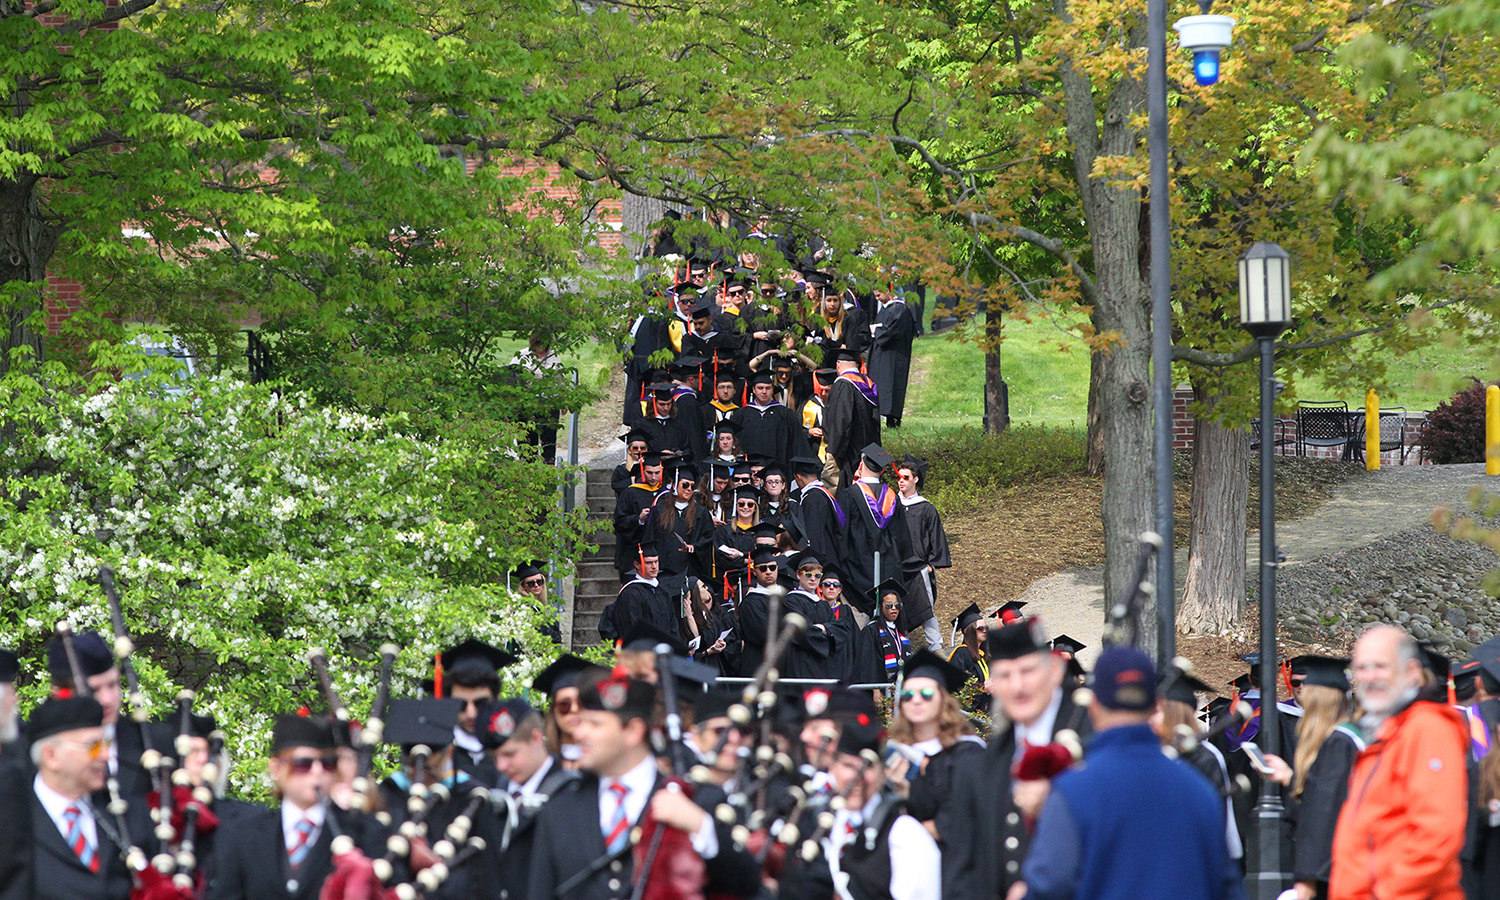 Outside of Bristol Gym, the HWS Classes of 2017 gather for the Commencement procession on Sunday.